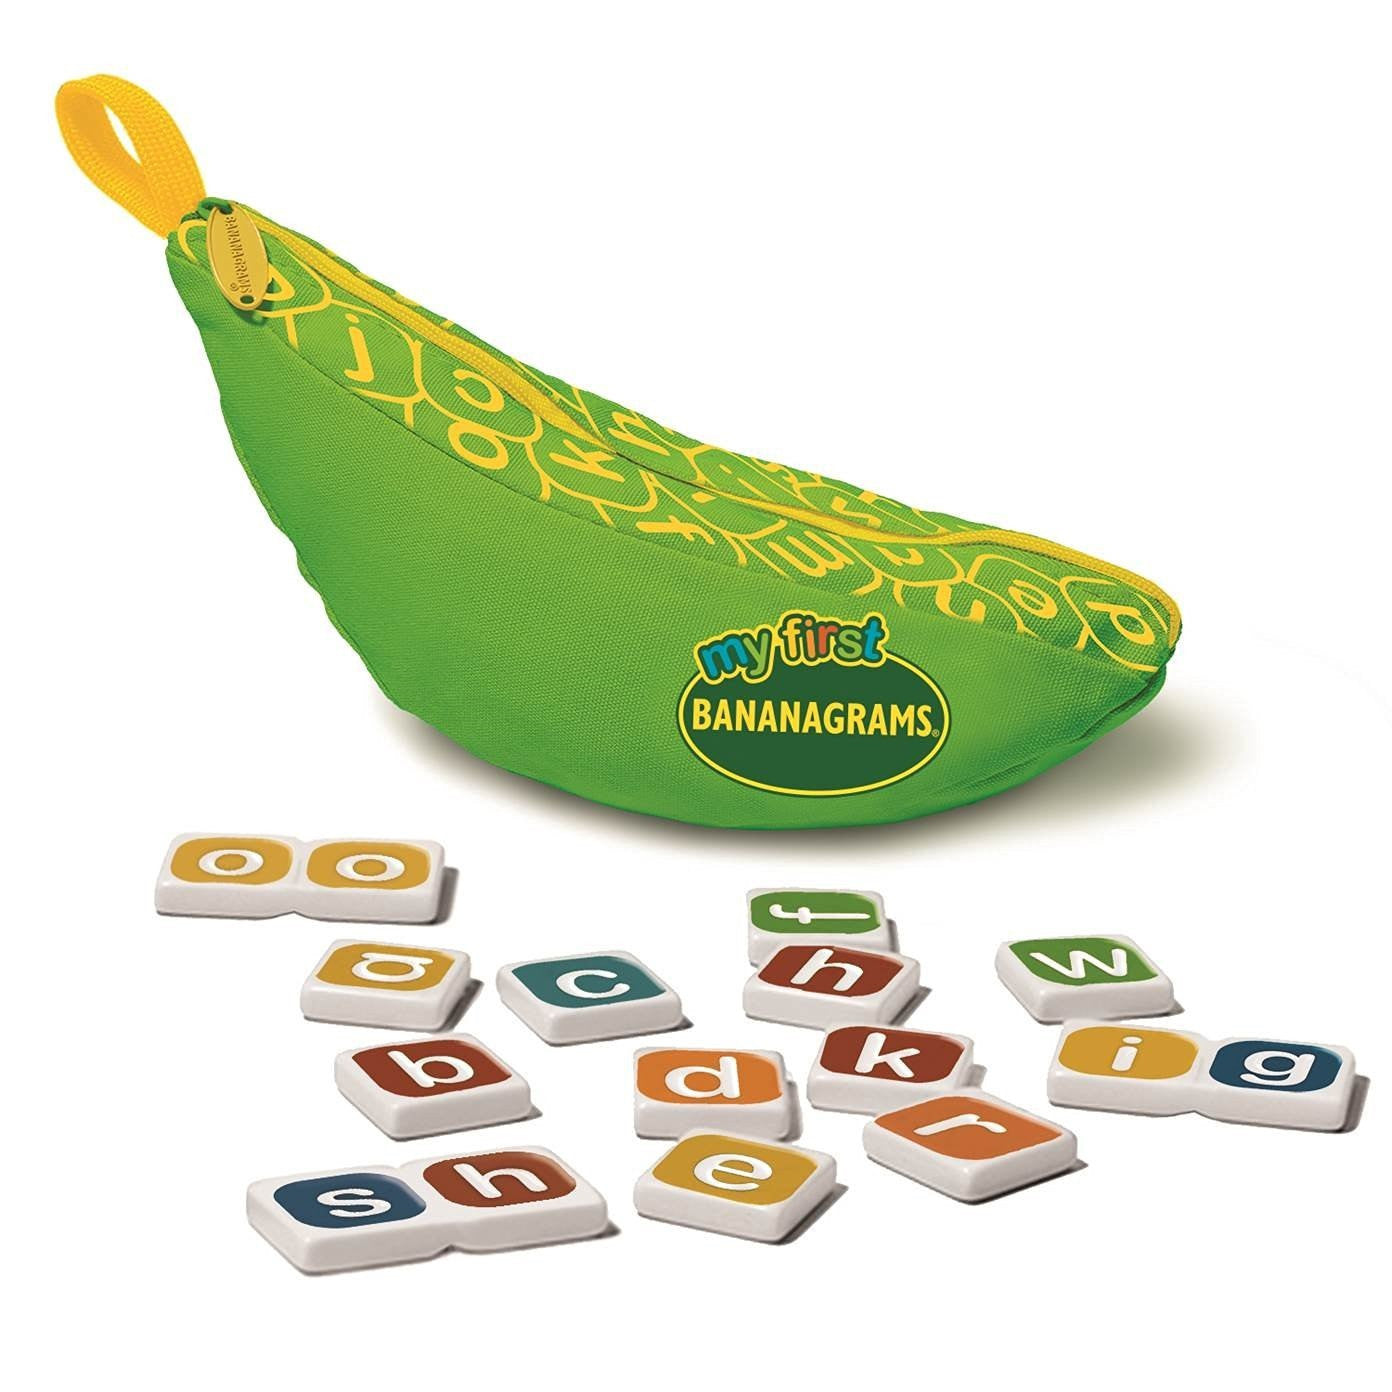 My First Bananagrams - Toybox Toy Jungle